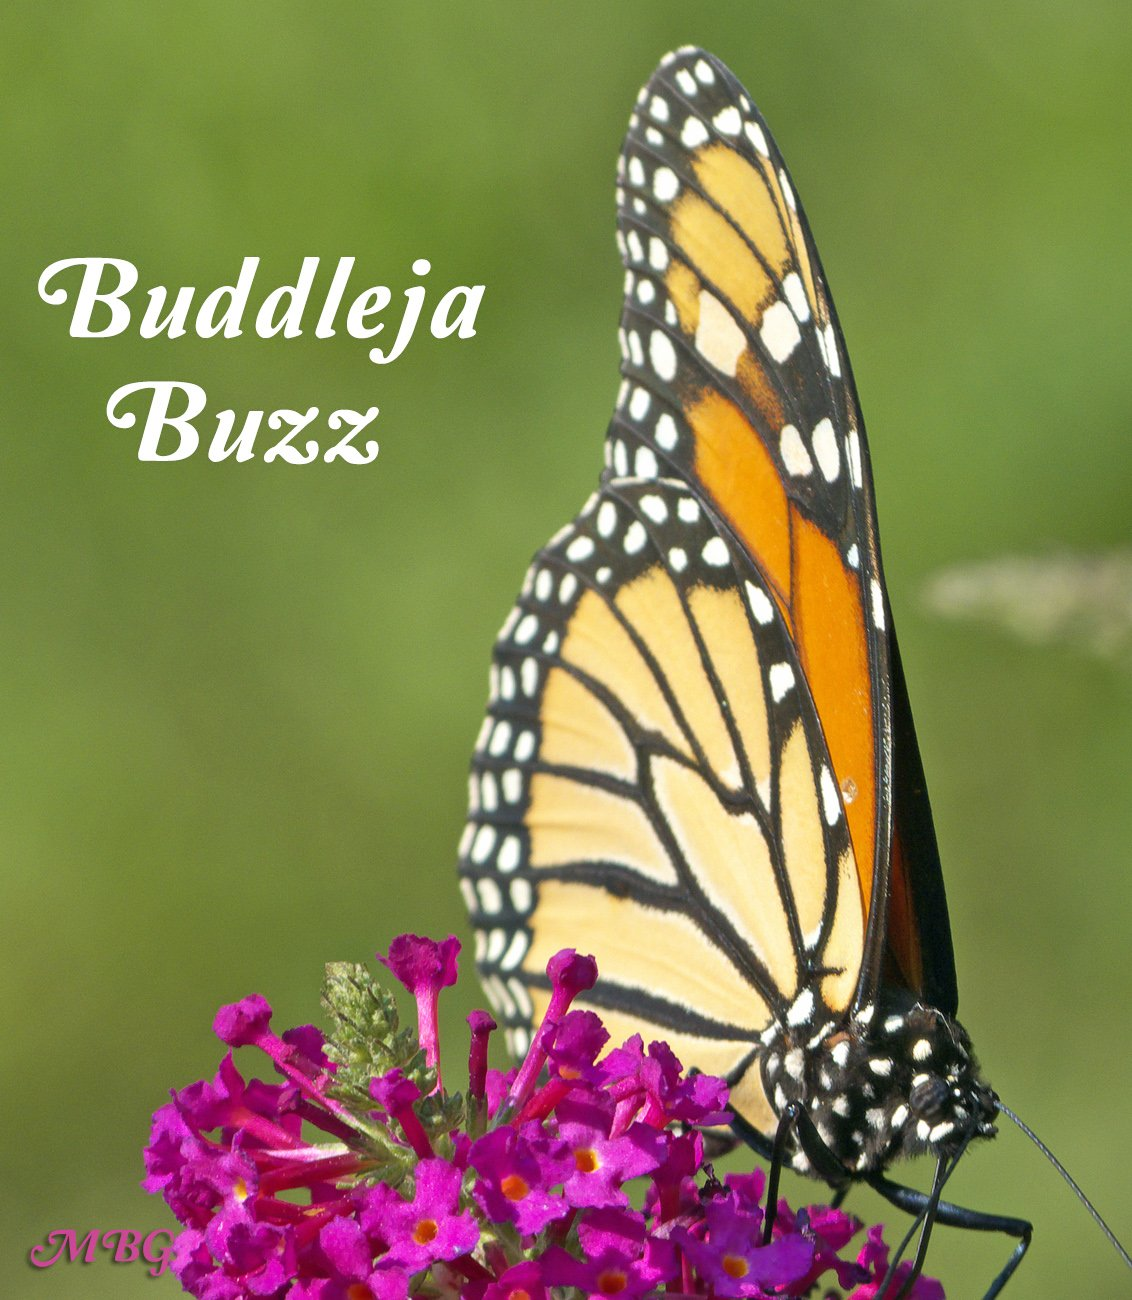 What's all the buzz about? Discover why this dwarf butterfly bush variety is one of our favorite monarch butterfly garden flowers, and why it might be perfect for your pollinator garden too...